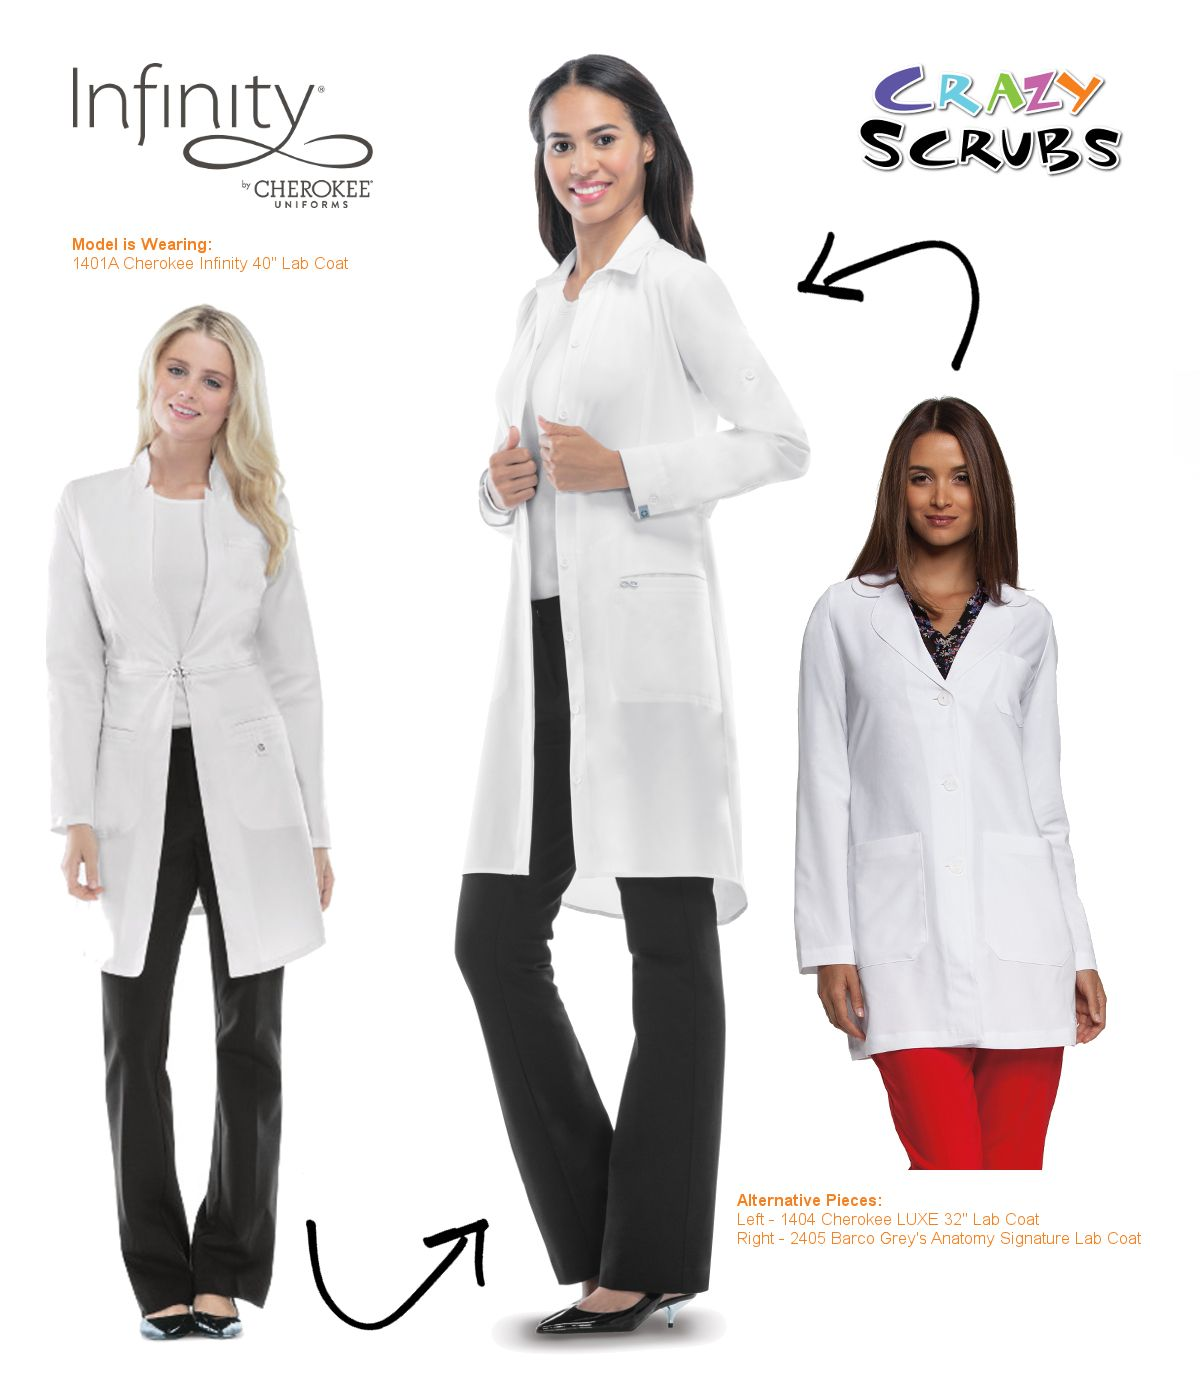 pant best pinterest low infinite uniforms drawstring straight rise stuff images leg cherokee by infinity pants on nurse